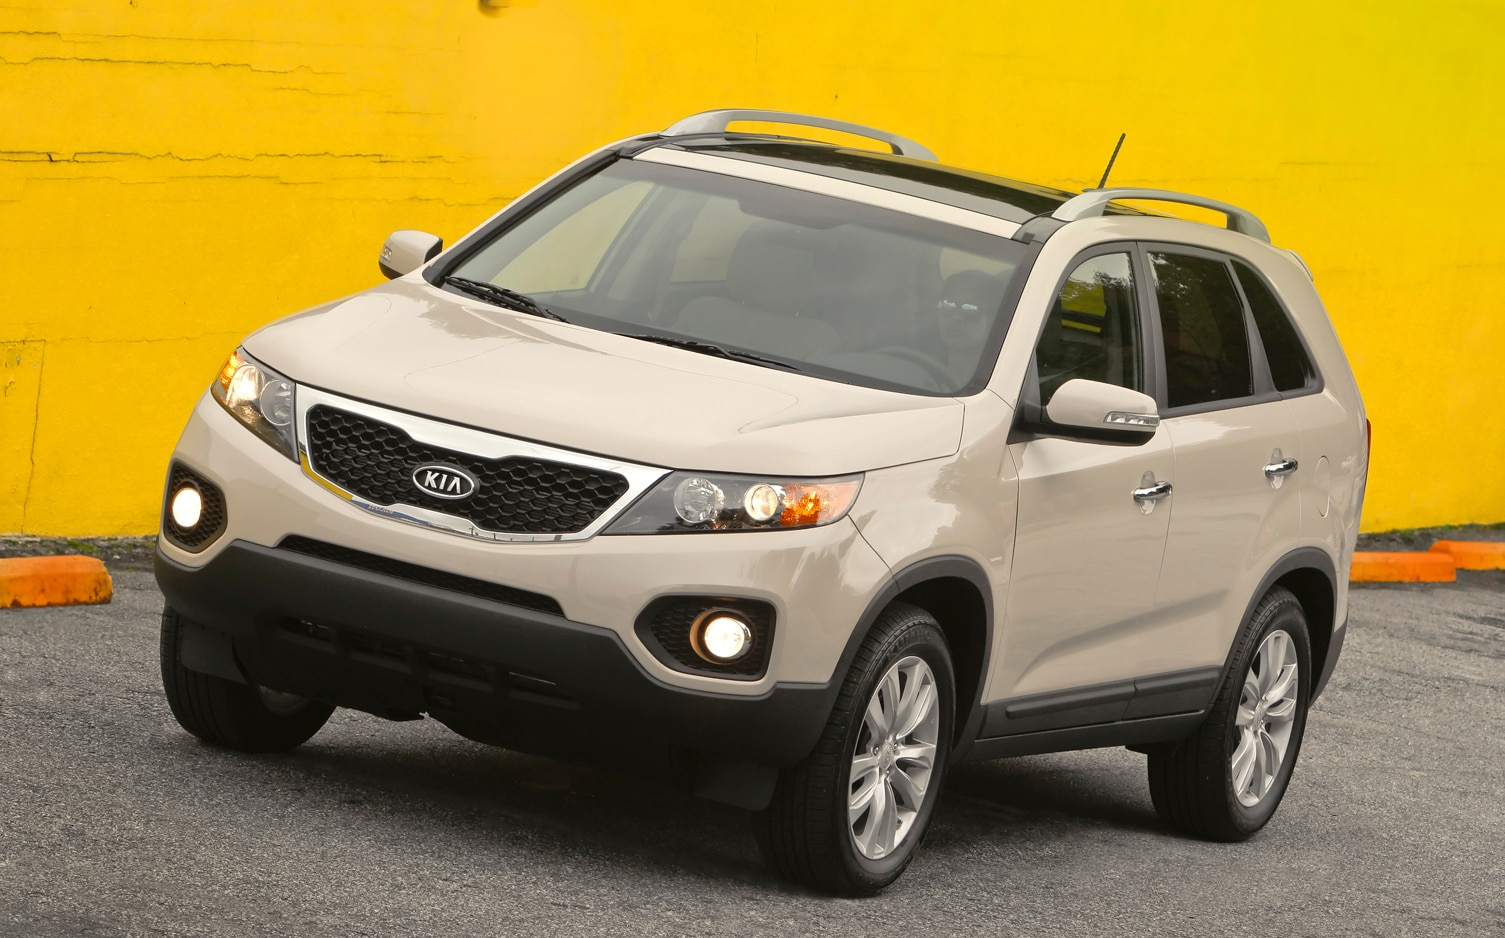 2012 Kia Sorento Front Left Side View